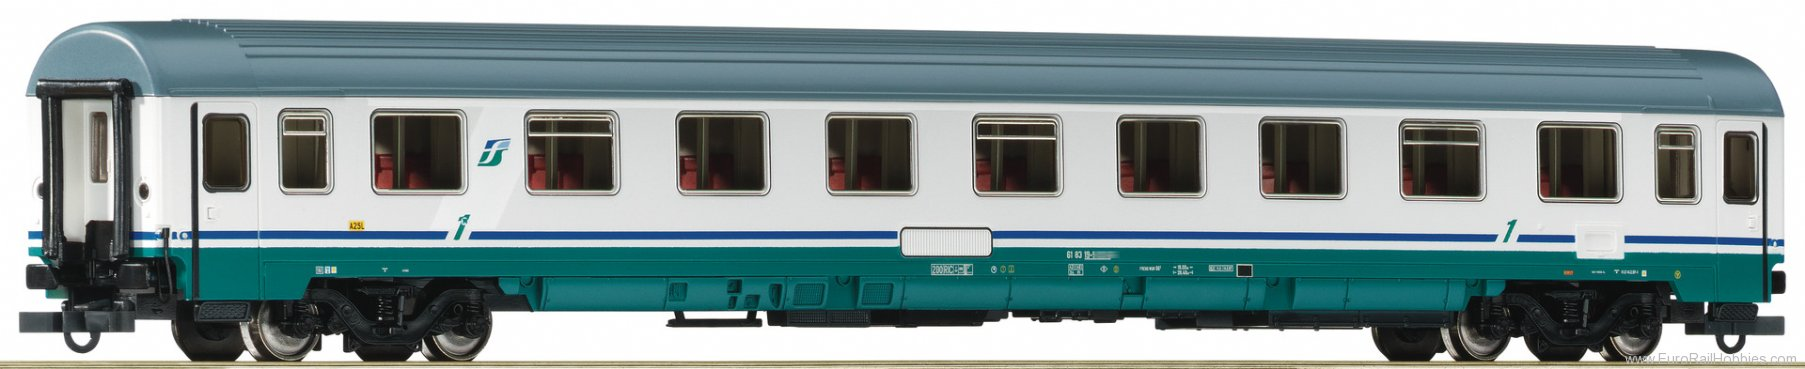 Roco 74330 1st class passenger carriage, FS